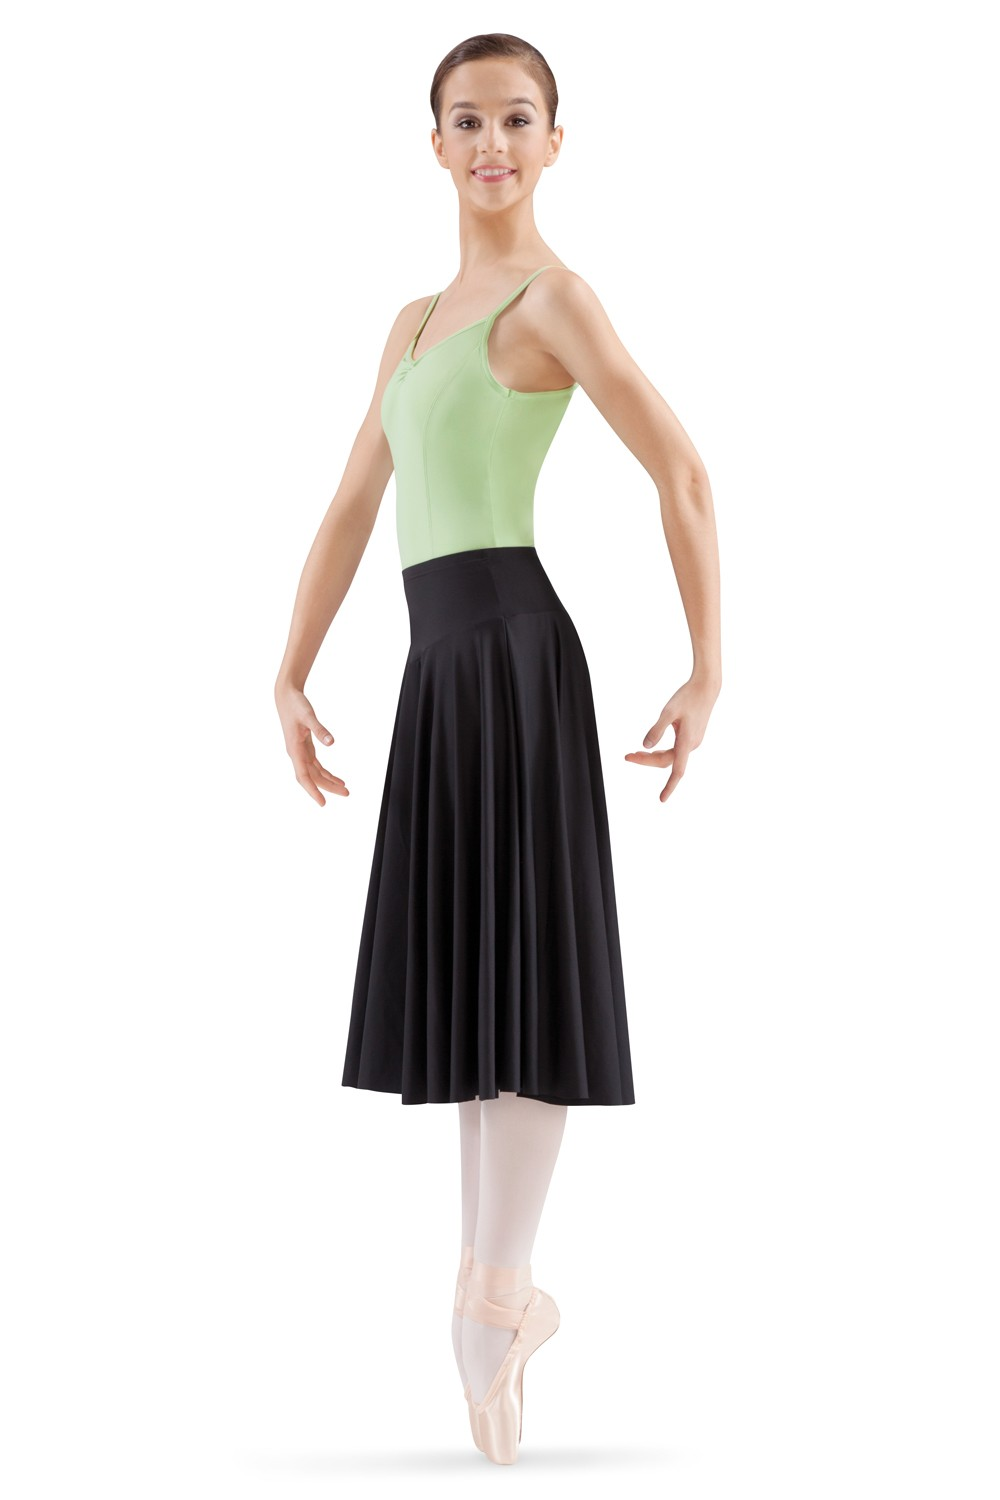 Tellerrock Women's Dance Skirts